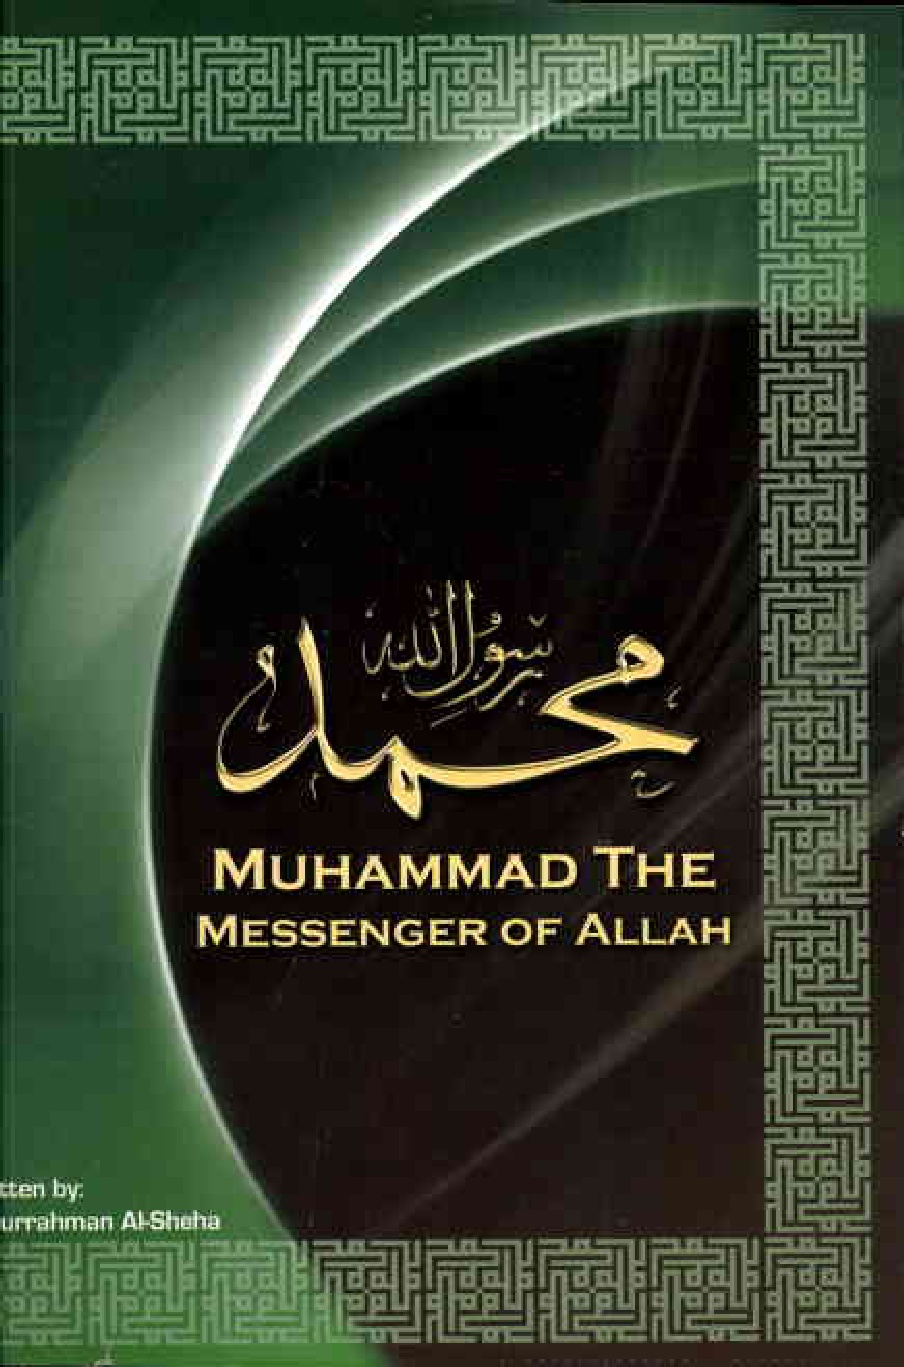 a biography of muhammad a prophet of god Muhammad, son of `abdullah, was born in mecca, in the year of elephant event, on monday morning, the 12 th rabi` al-awwal, 570 ad 1 `abdullah means slave of god his mother was 'aminah, daughter of wahab the chief of his tribe banu zahrah.